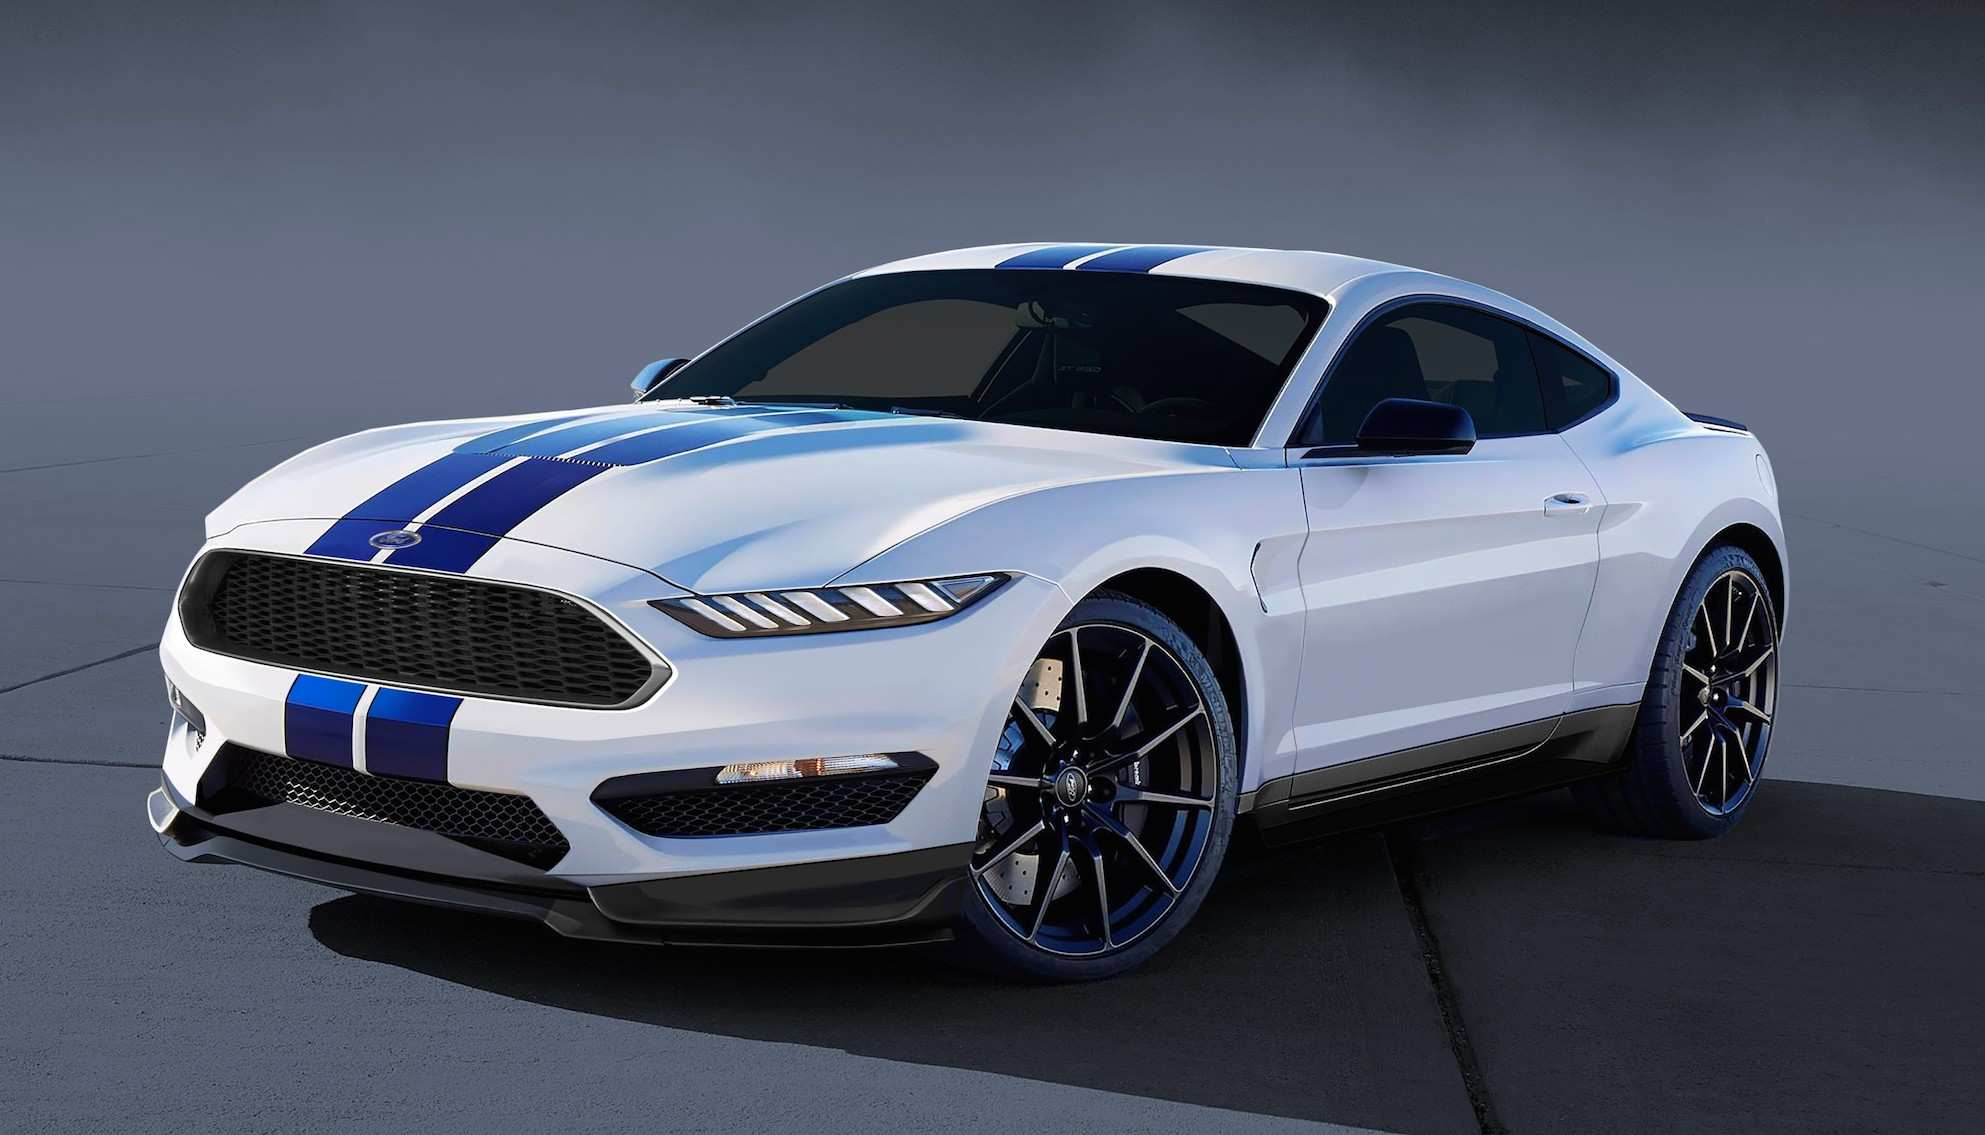 81 Concept of 2020 Ford Mustang Gt350 Photos for 2020 Ford Mustang Gt350